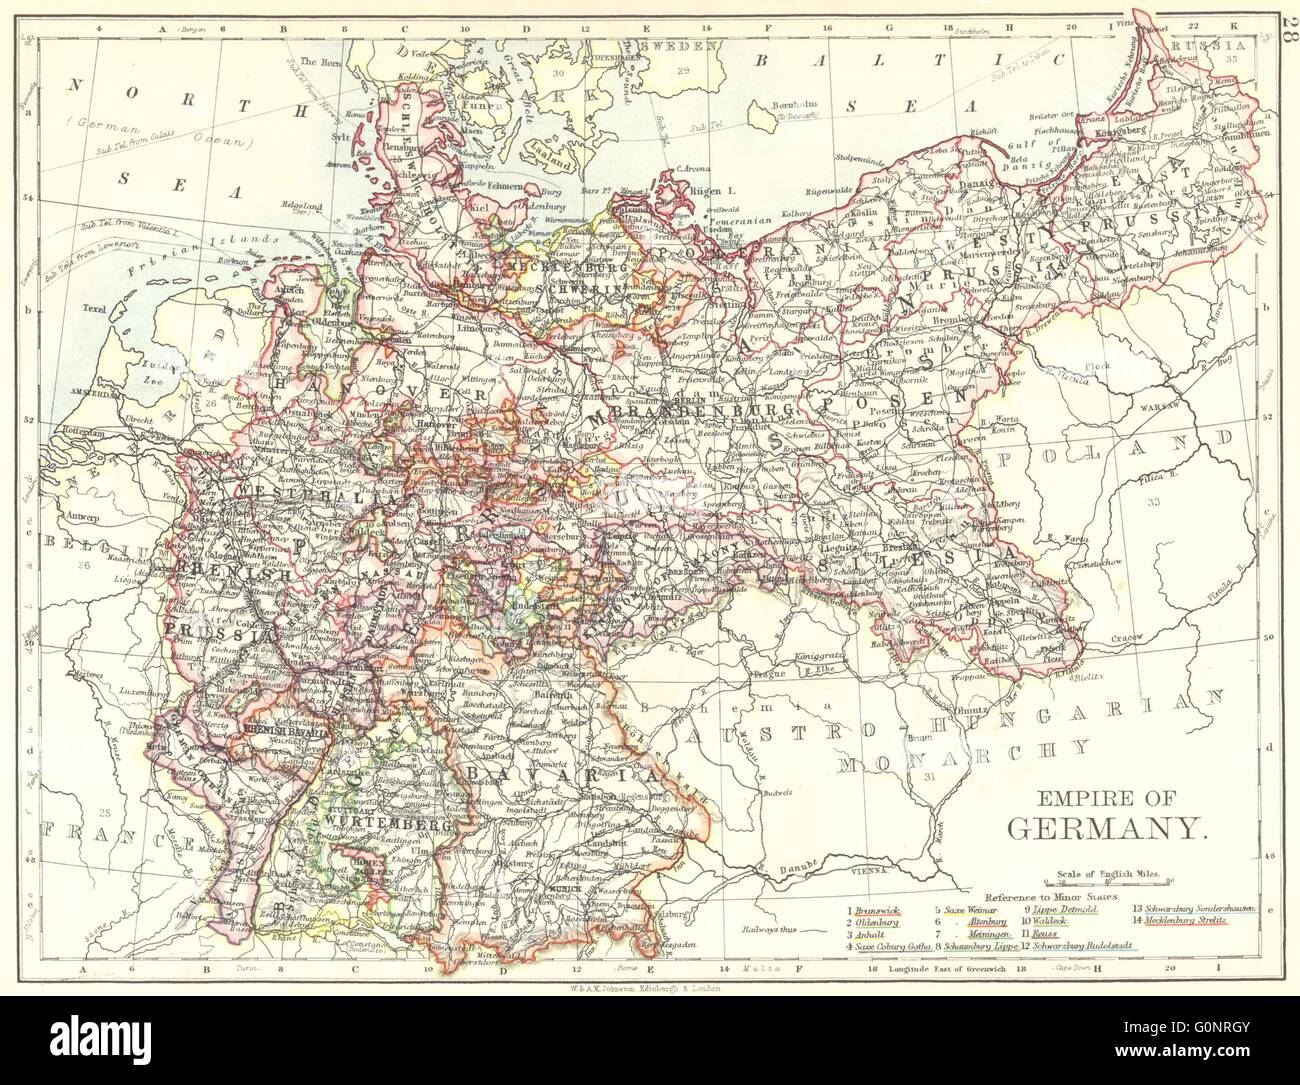 EMPIRE OF GERMANY States Prussia Bavaria Alsace Lorraine - Germany map 1900